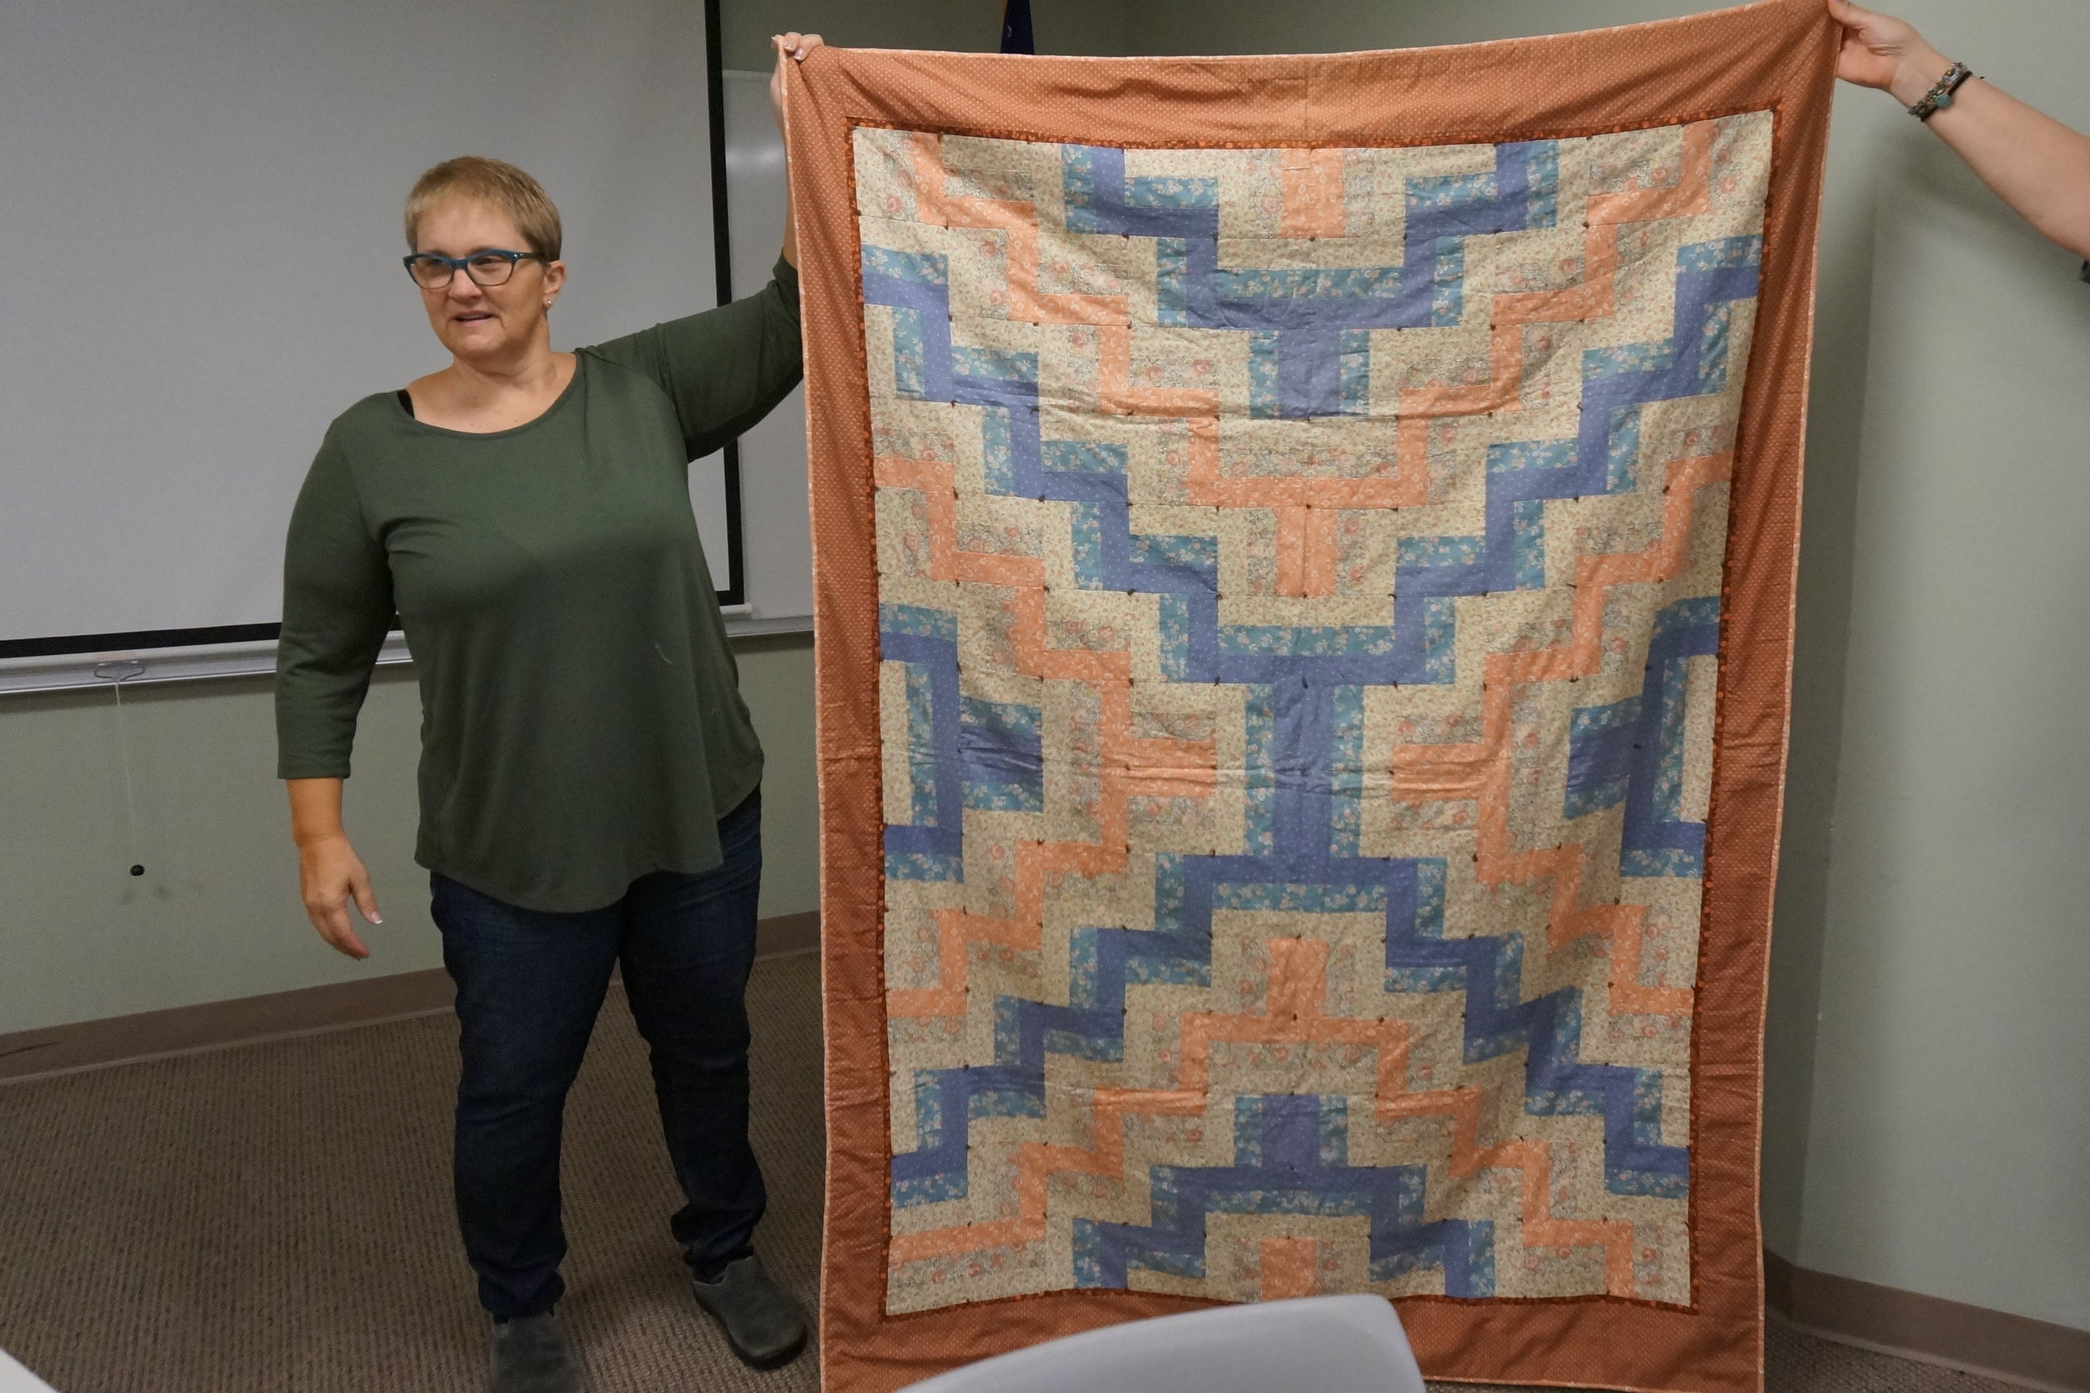 - Kathy first made a quilt as a teenager, and since her father was a doctor, she used old X-ray films as template material. She made the quilt above when she was newly married in 1987.